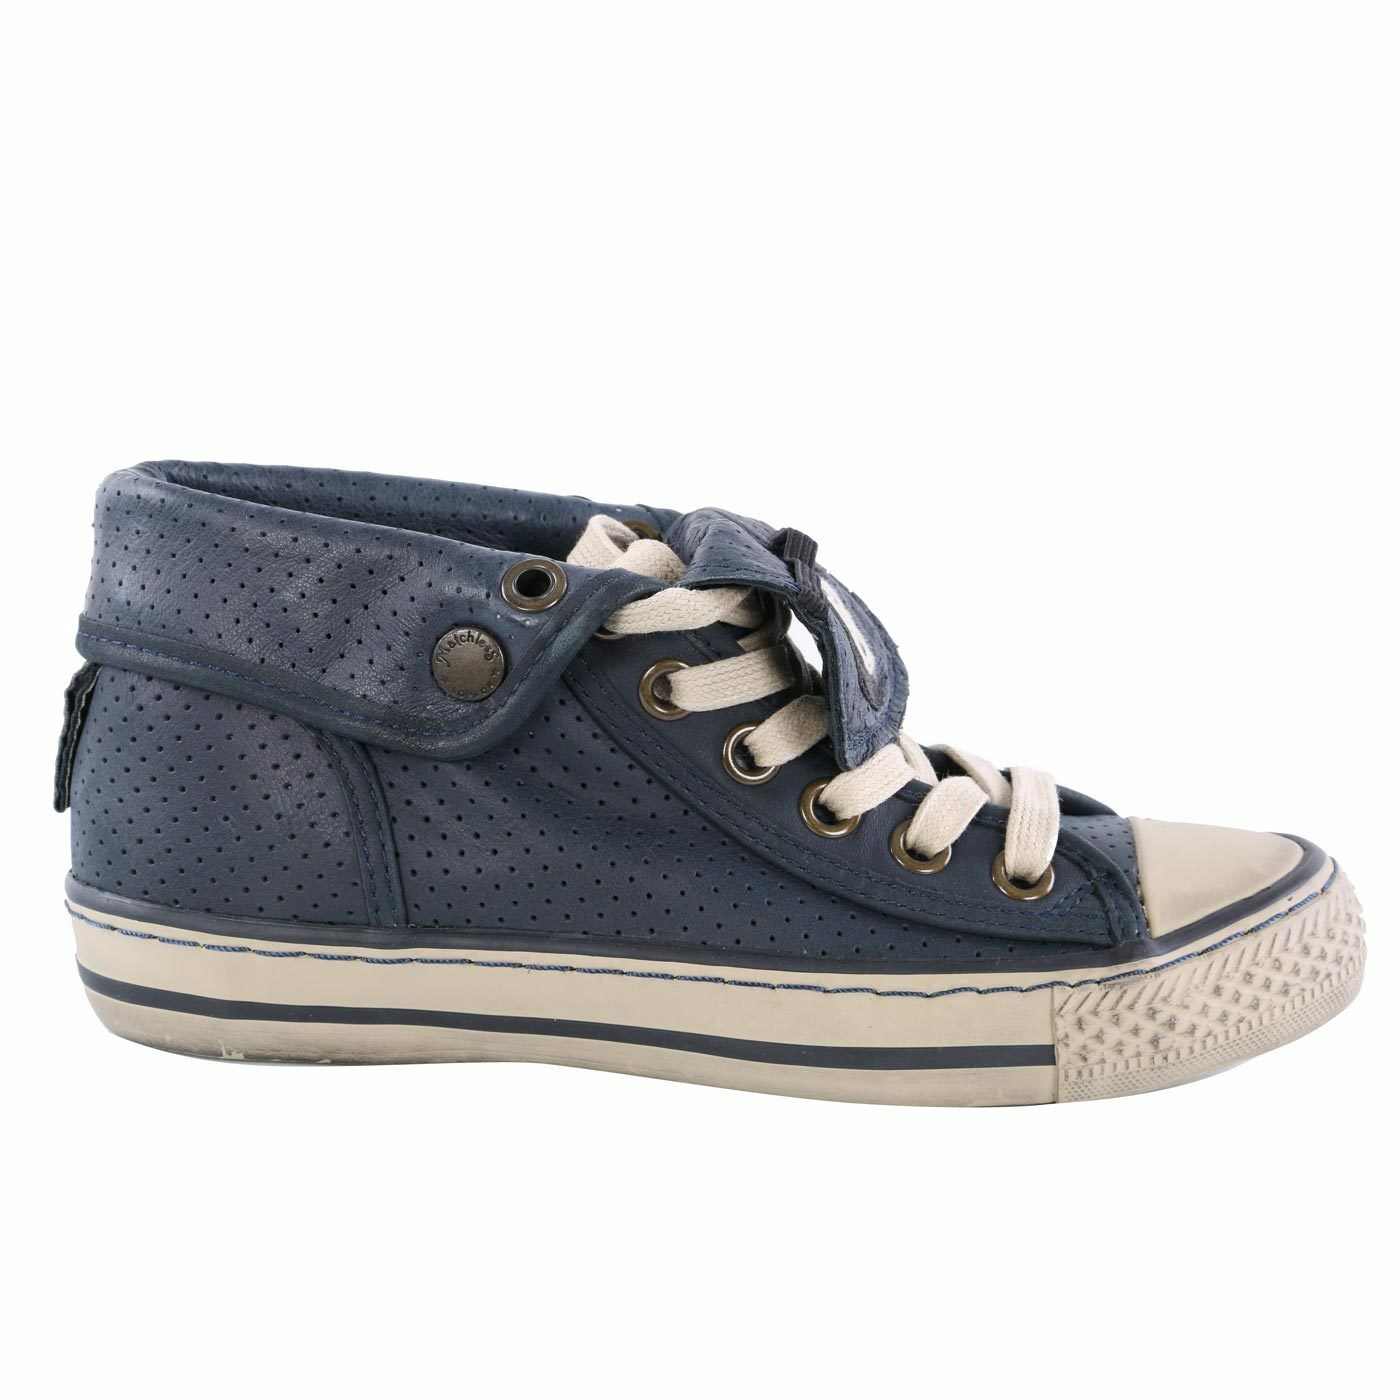 Matchless Ladies Leather Sneakers shoes Watts High Vent Navy 142019 Size 37